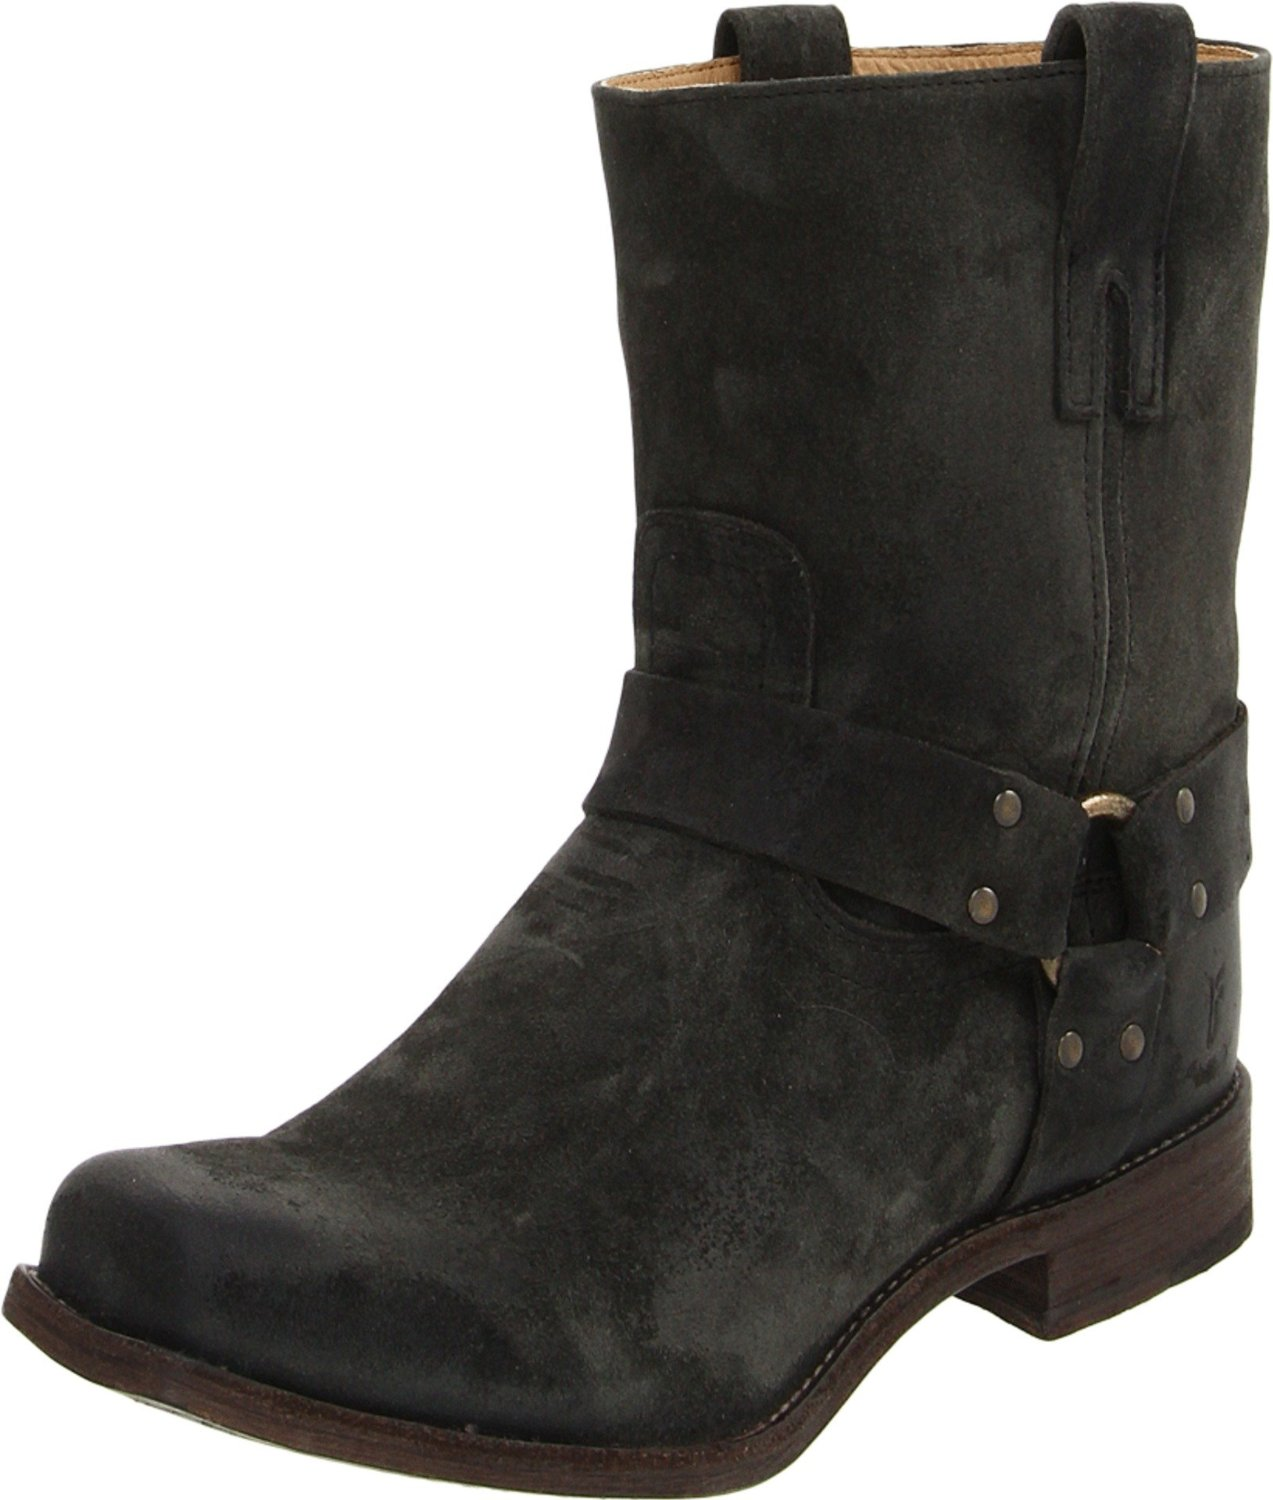 frye frye mens smith harness boot in black for